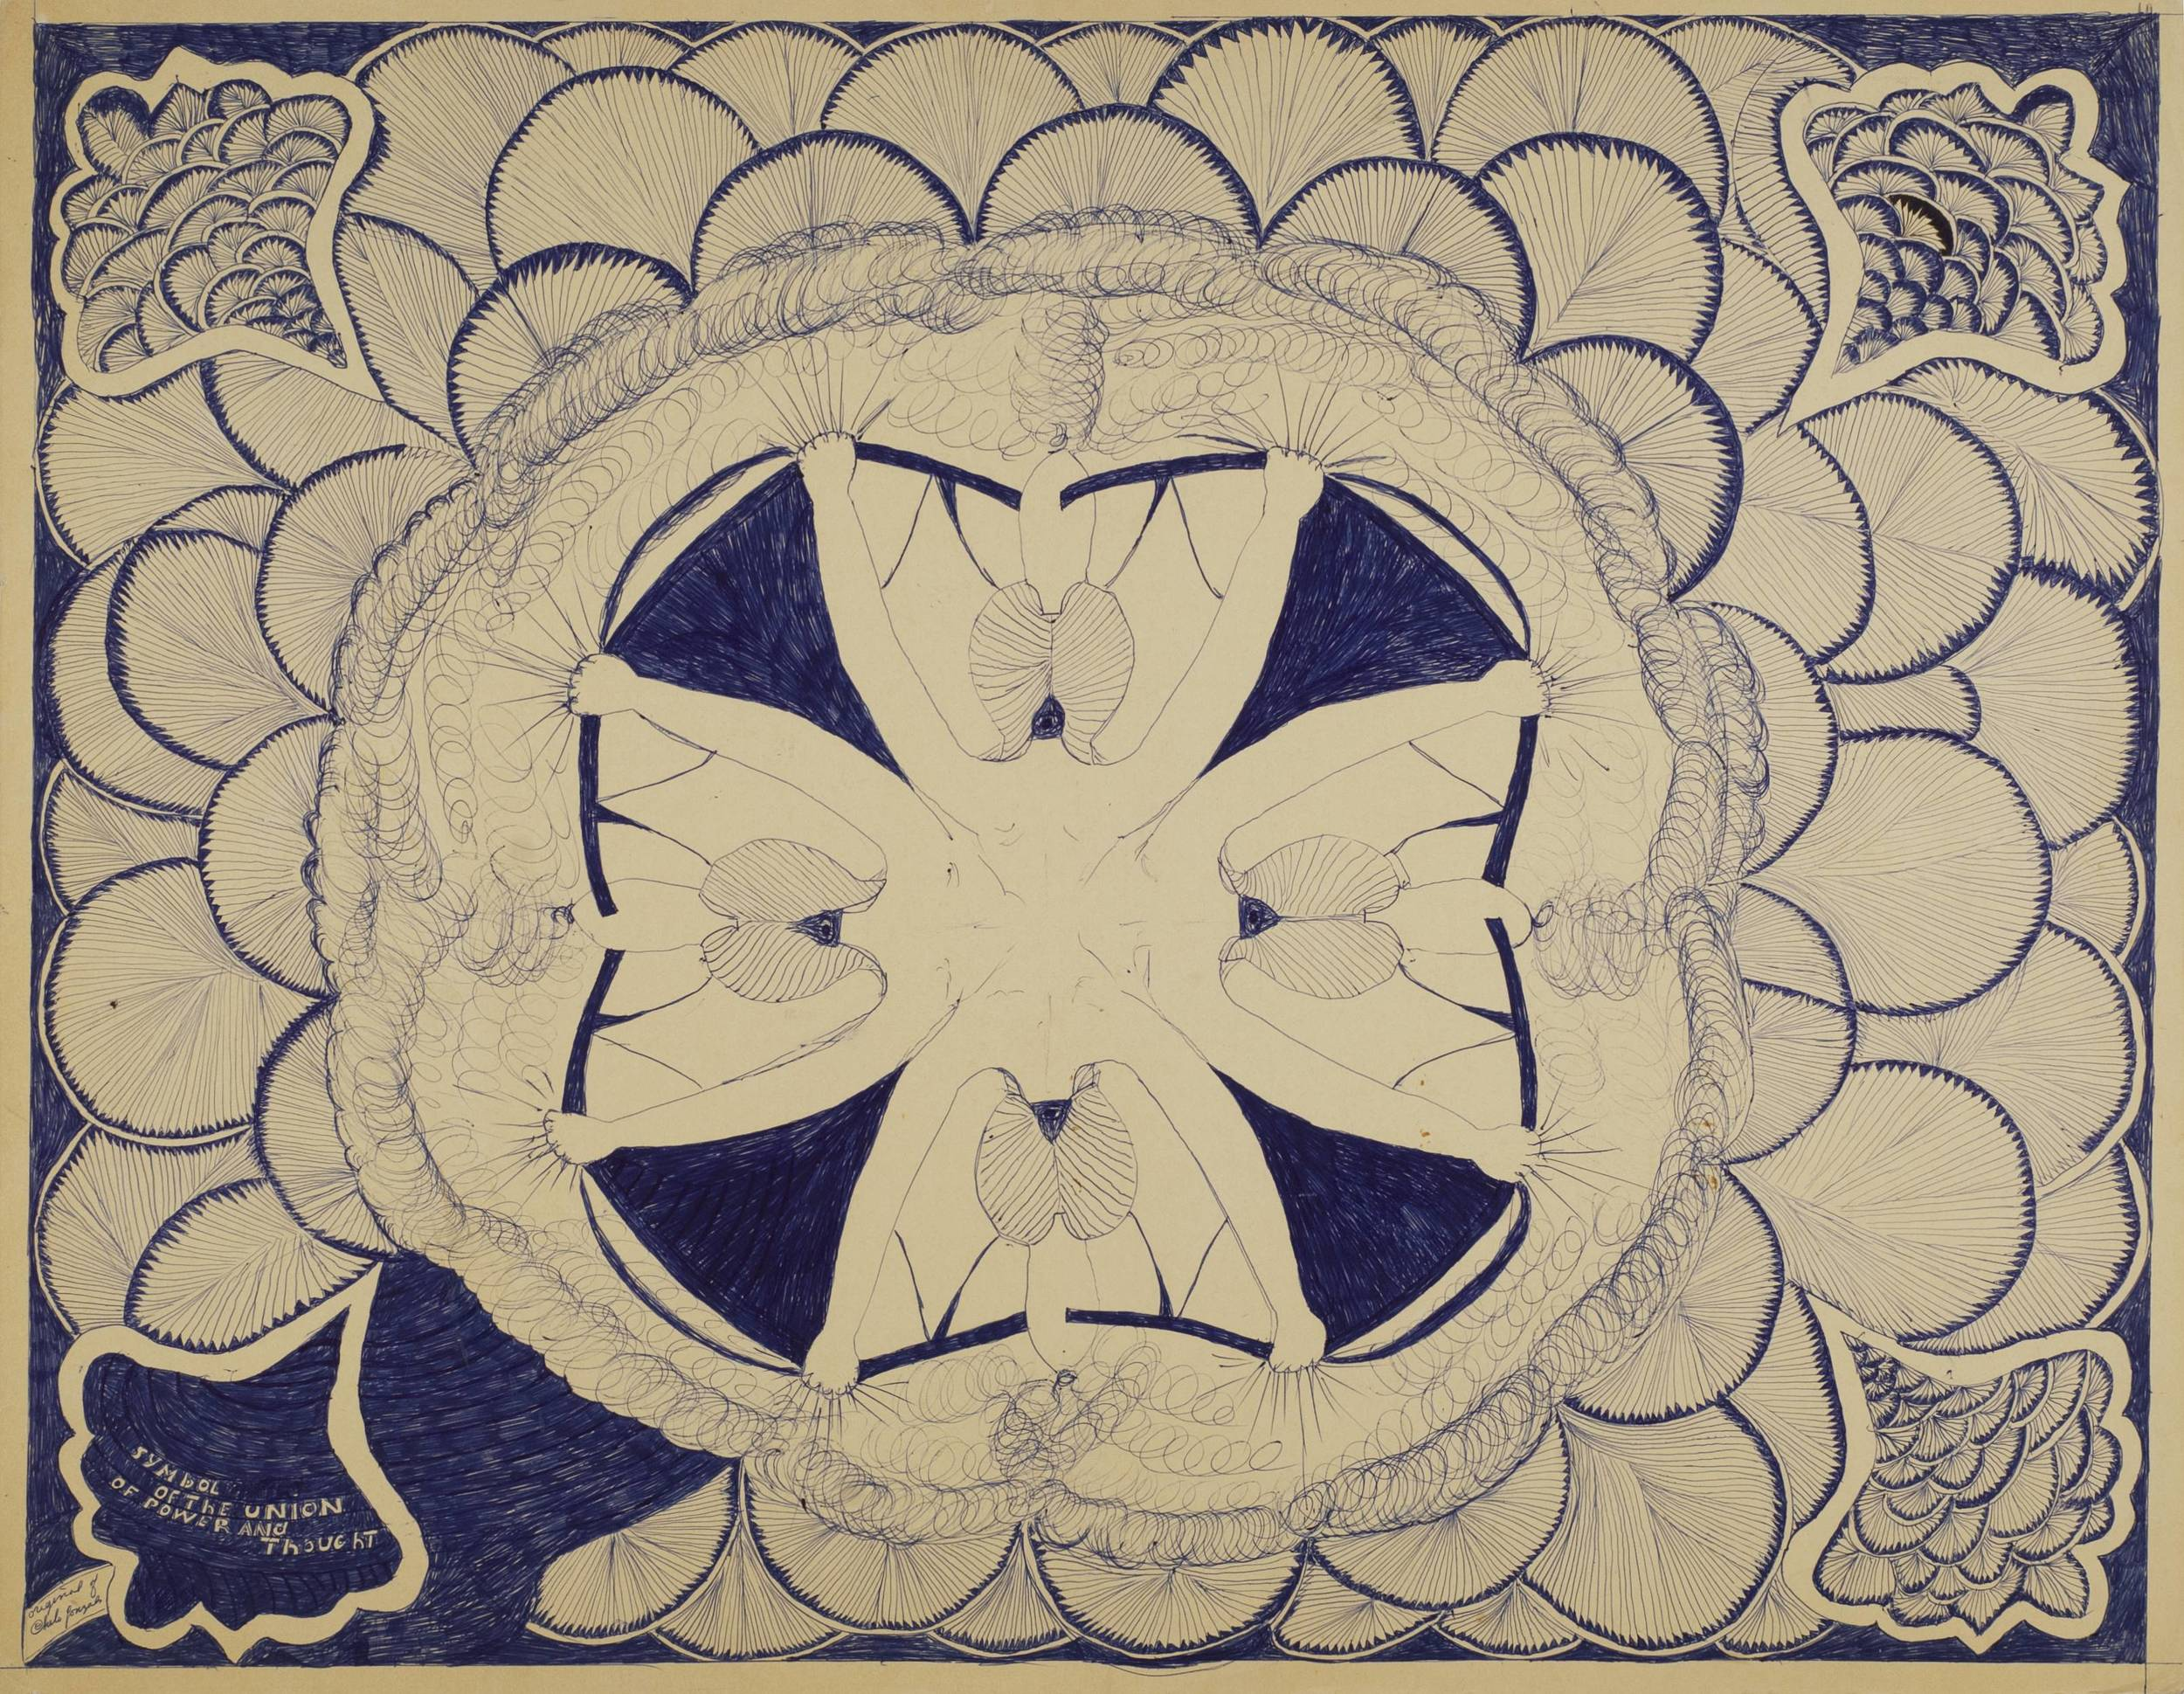 Chelo Amezcua    Symbol of The Union of Power and Thought  , 1967 Graphite, ink on matboard 22 x 28 in  (55.9 x 71.1 cm) CA 99